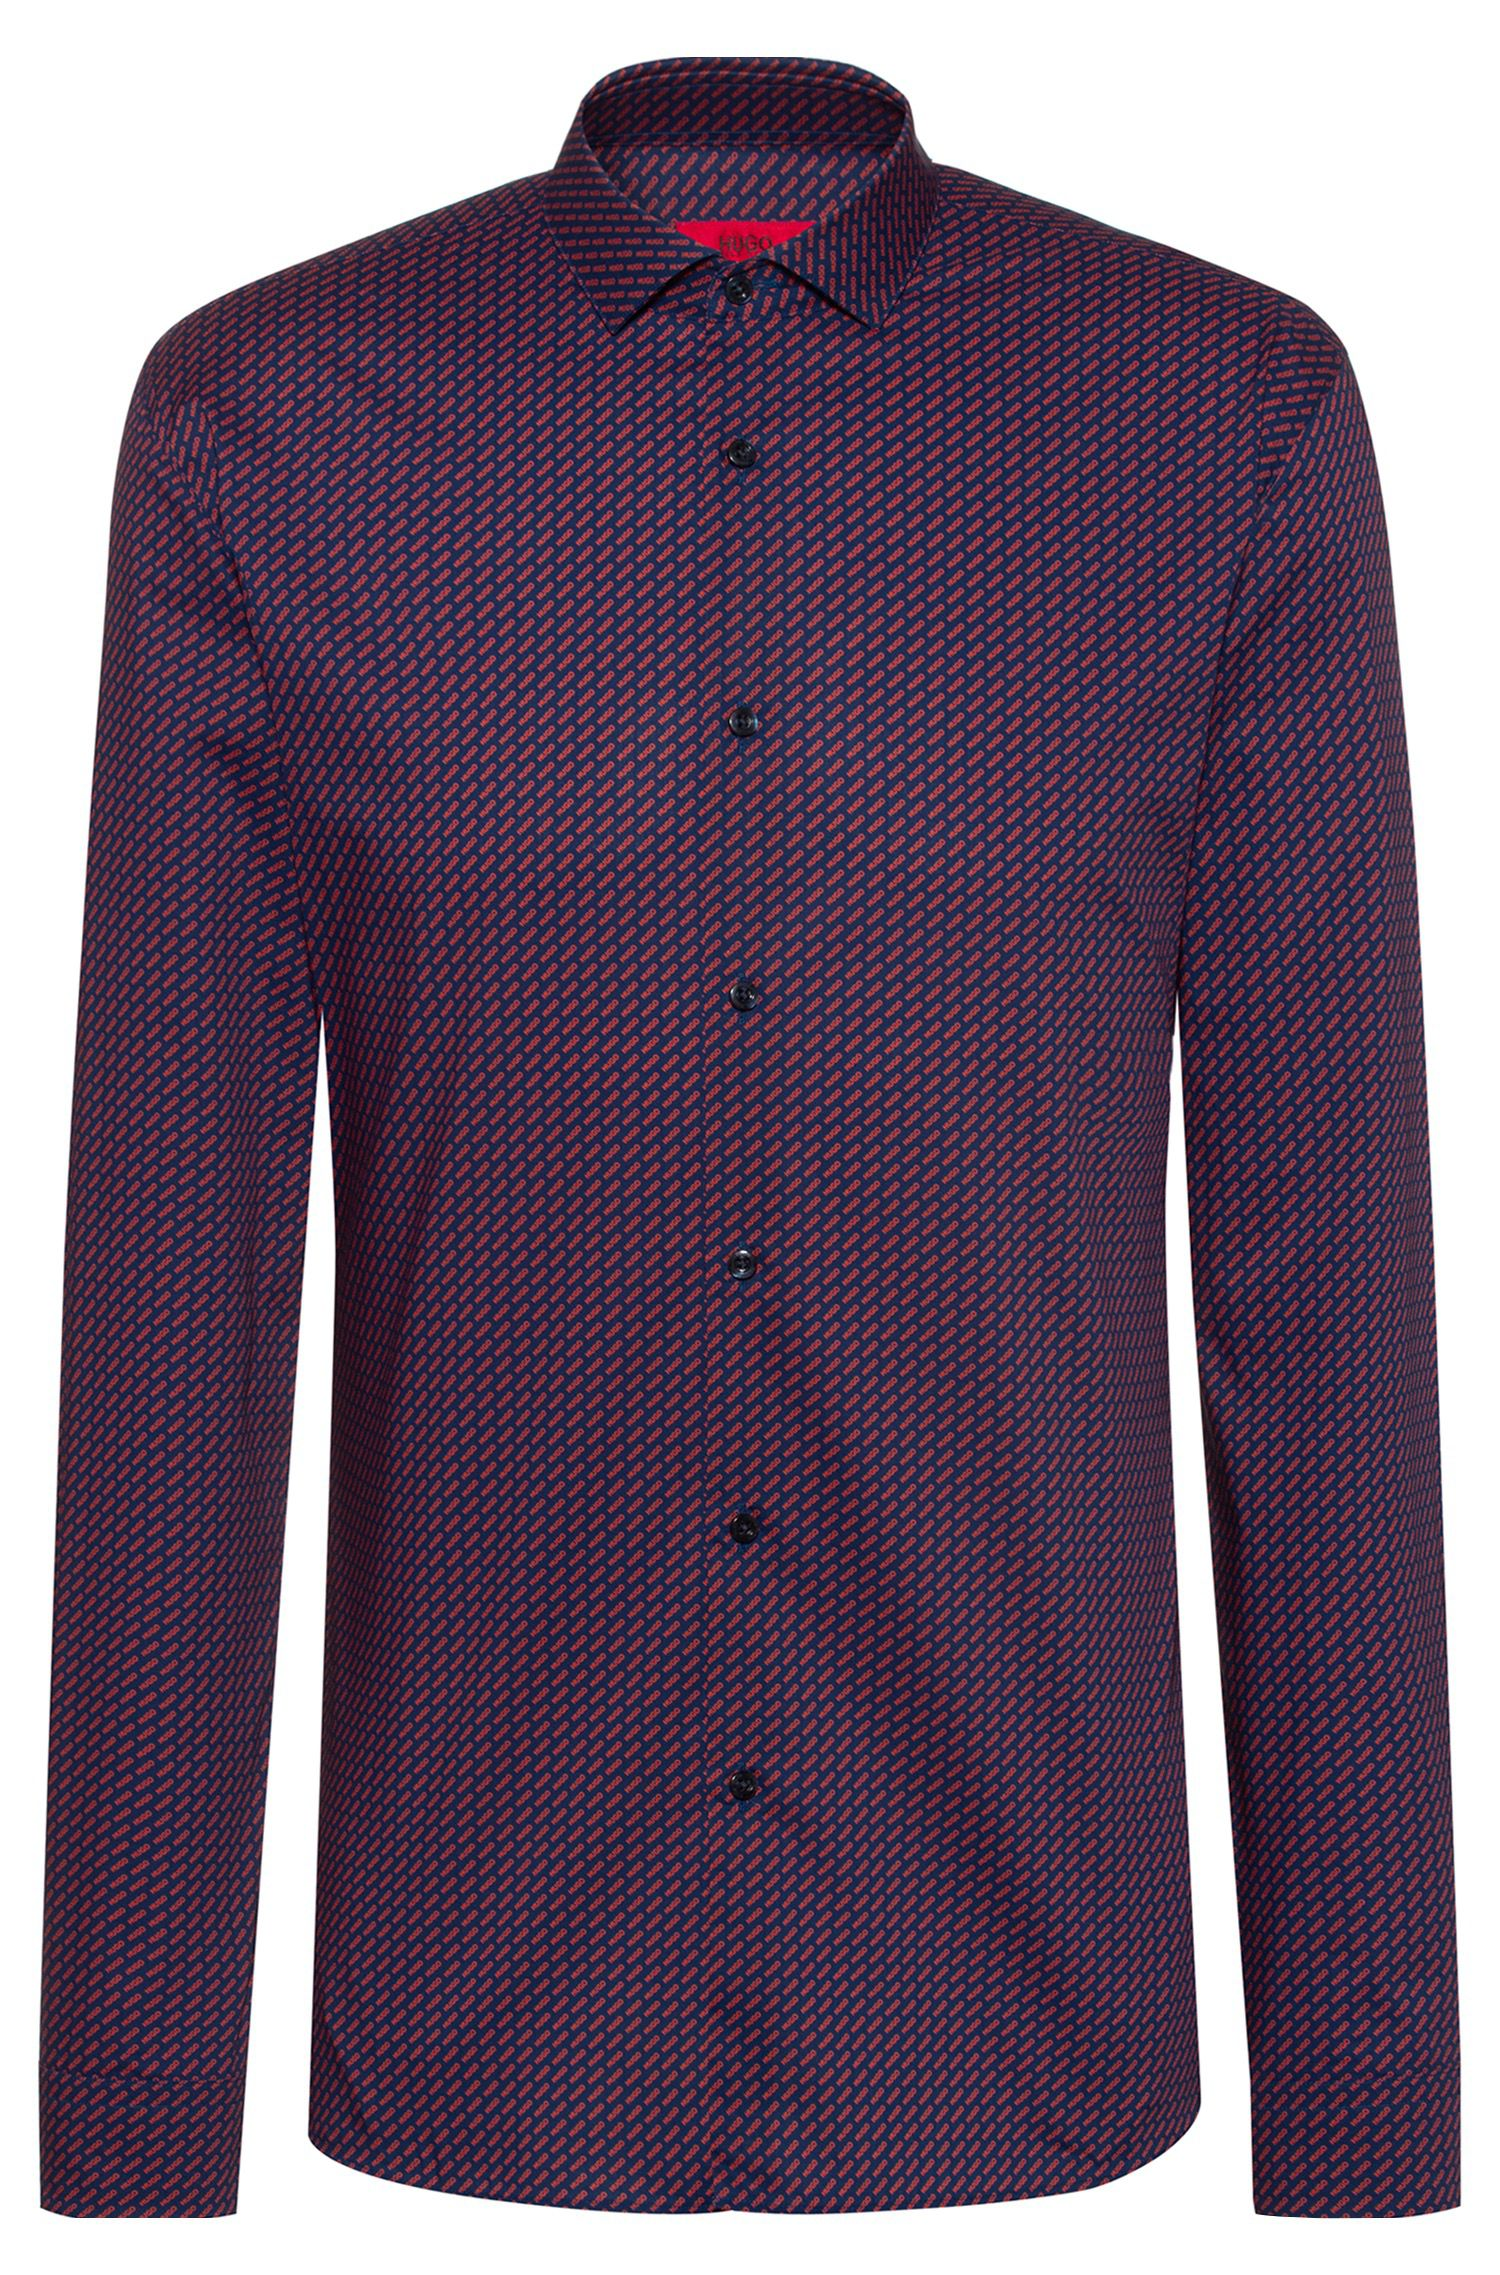 Extra-slim-fit shirt with all-over logo print, Patterned